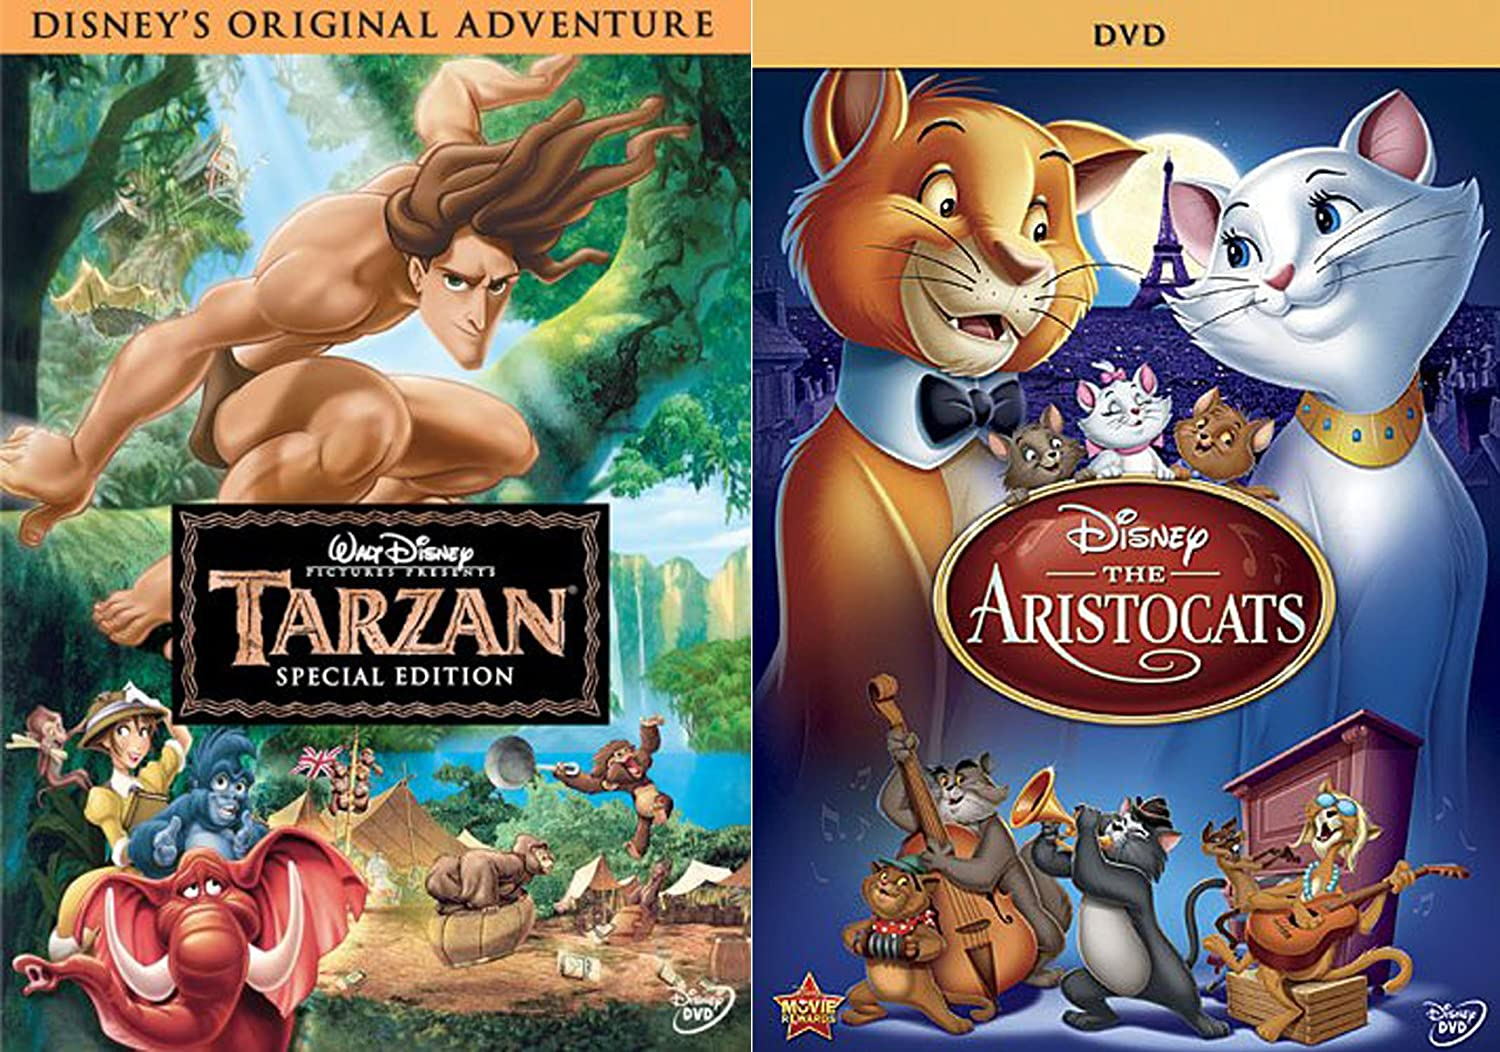 Amazon Com Classic Disney Animated Features Dvd Bundle Tarzan Special Edition The Aristocats 2 Movie Animal Collection Double Feature Movies Tv